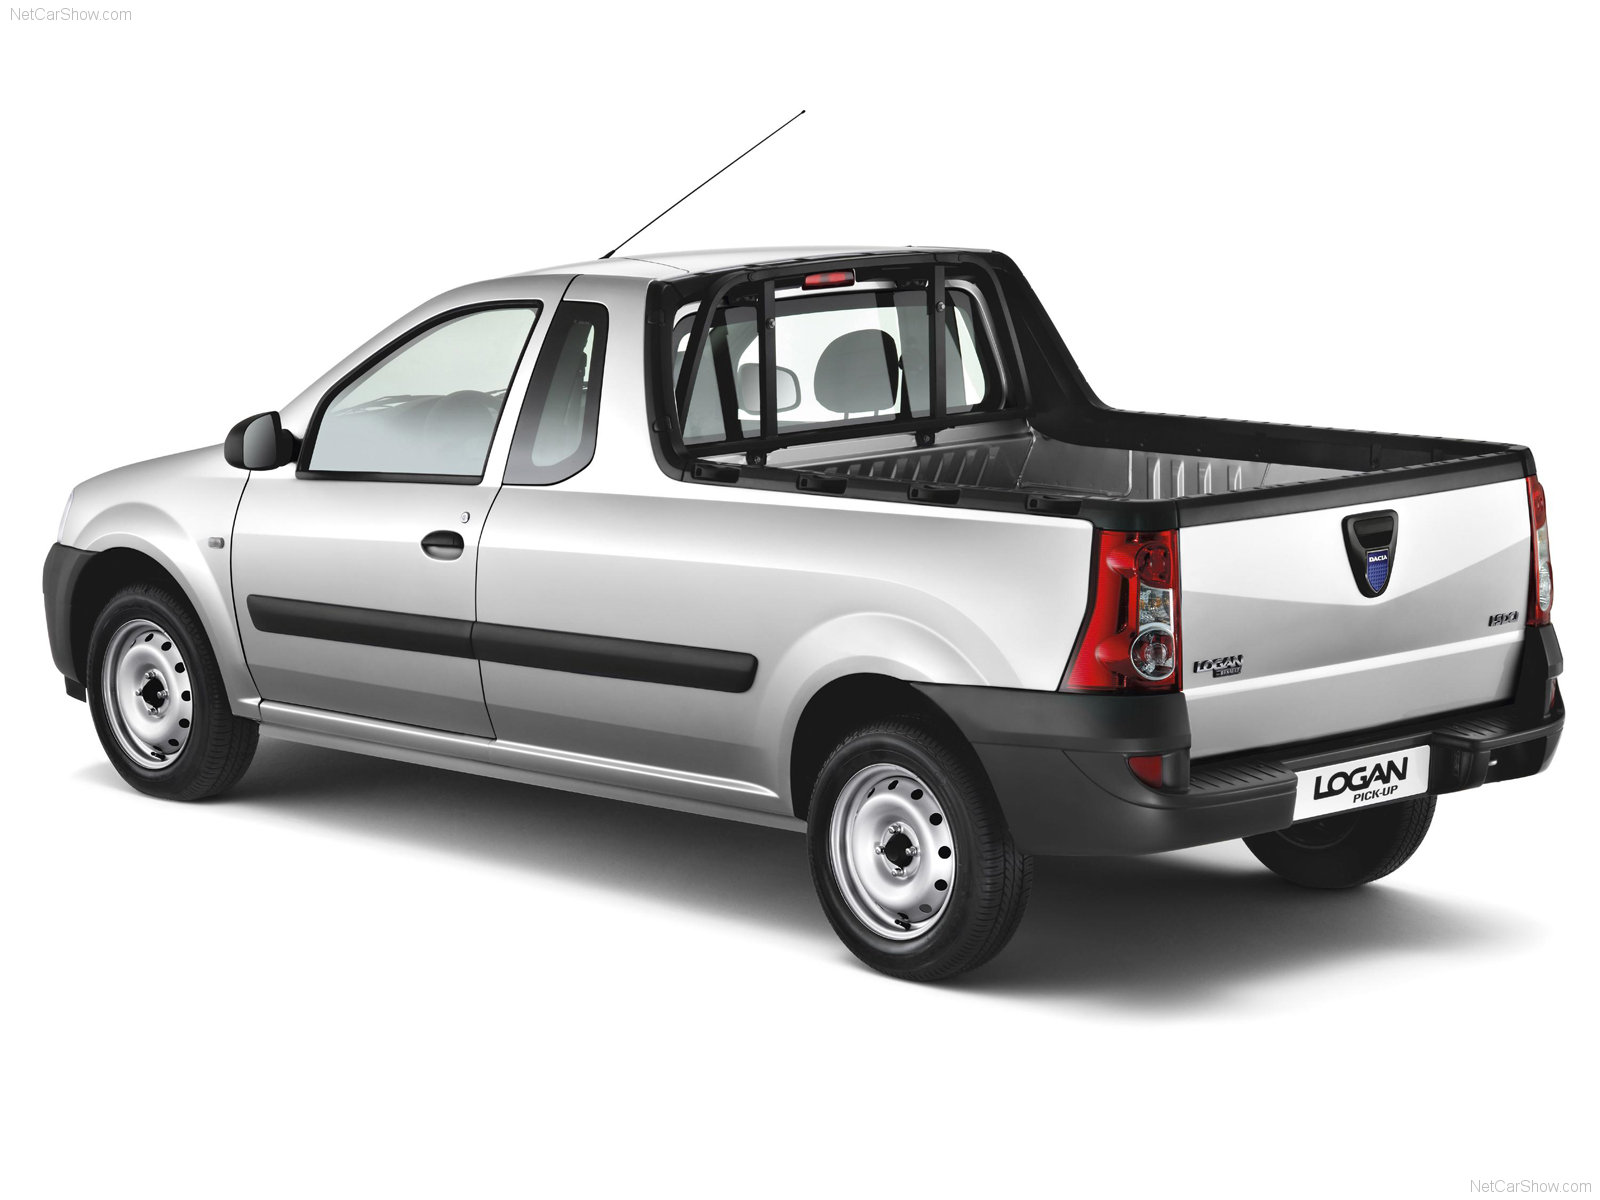 dacia logan pickup photos news reviews specs car listings. Black Bedroom Furniture Sets. Home Design Ideas